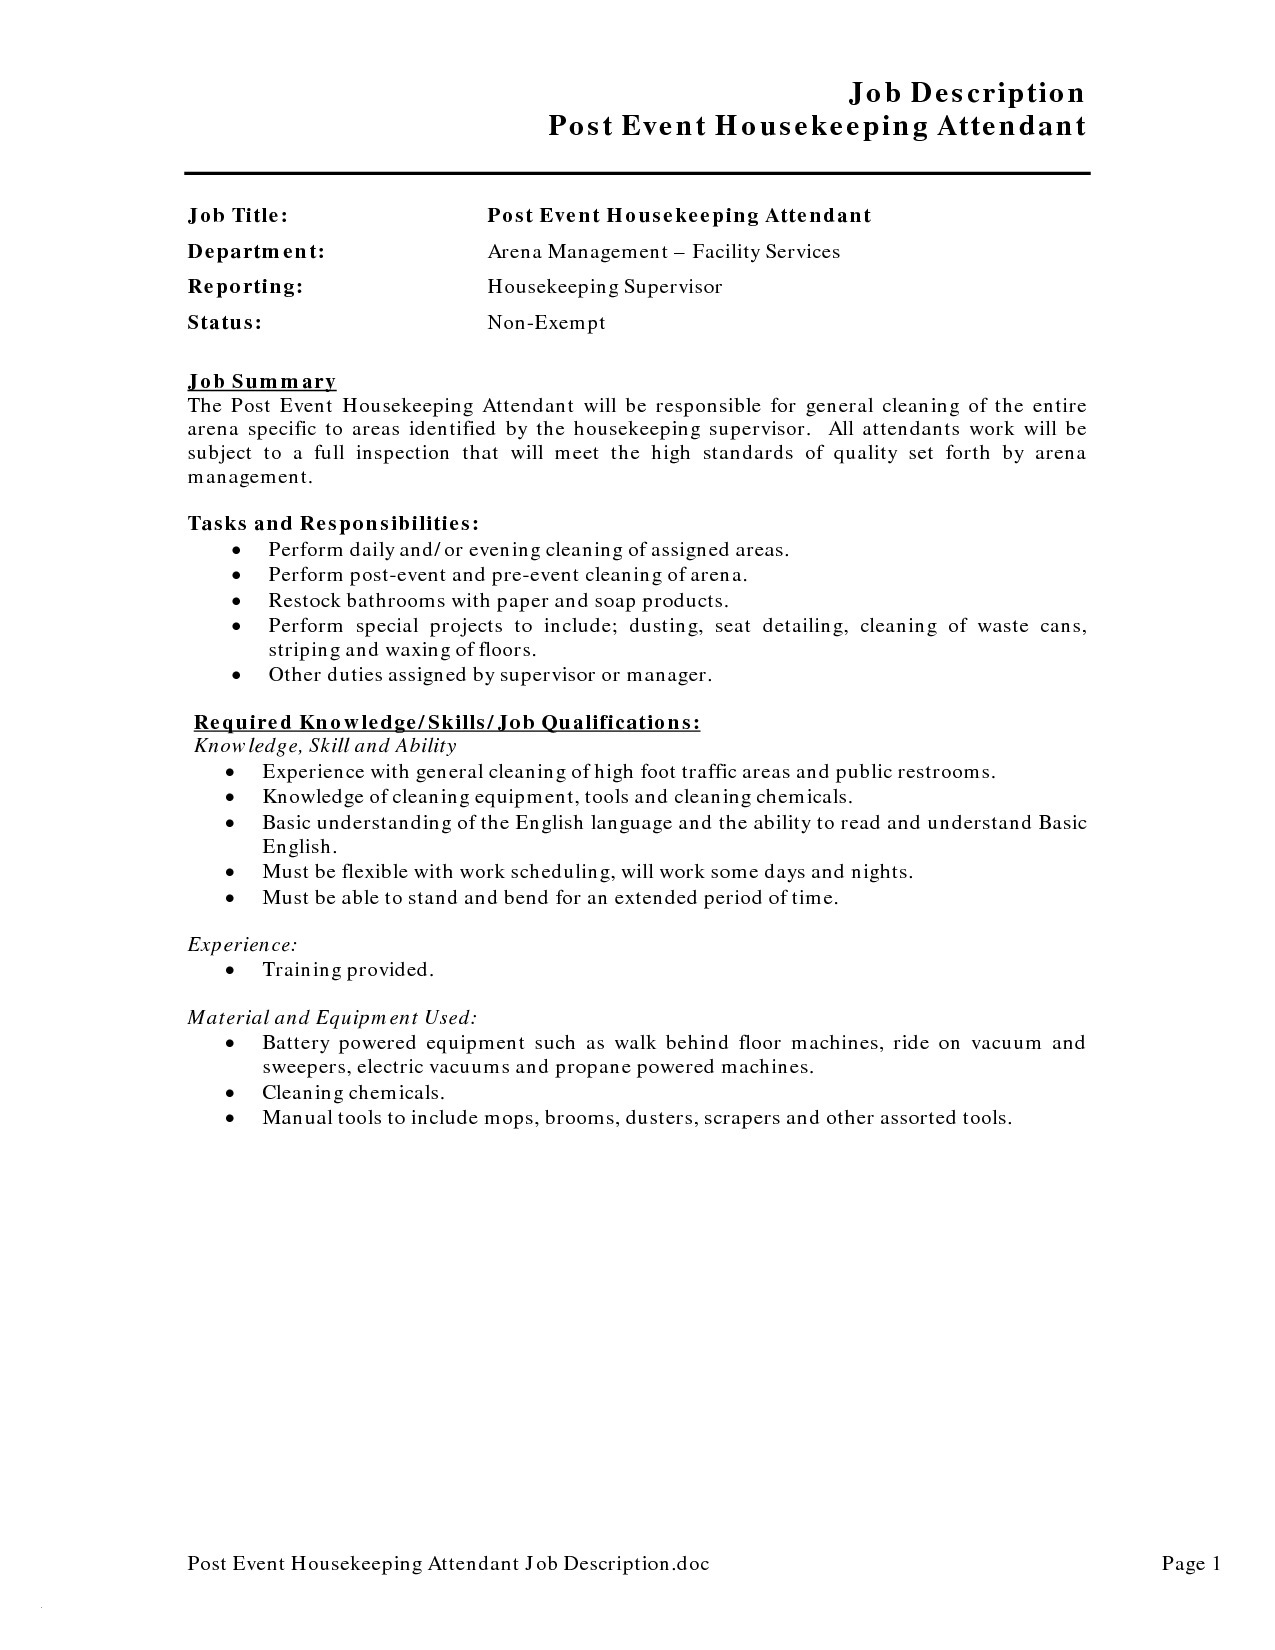 Housekeeping Job Description for Resume - Hotel Housekeeping Job Description for Resume Best Hotel